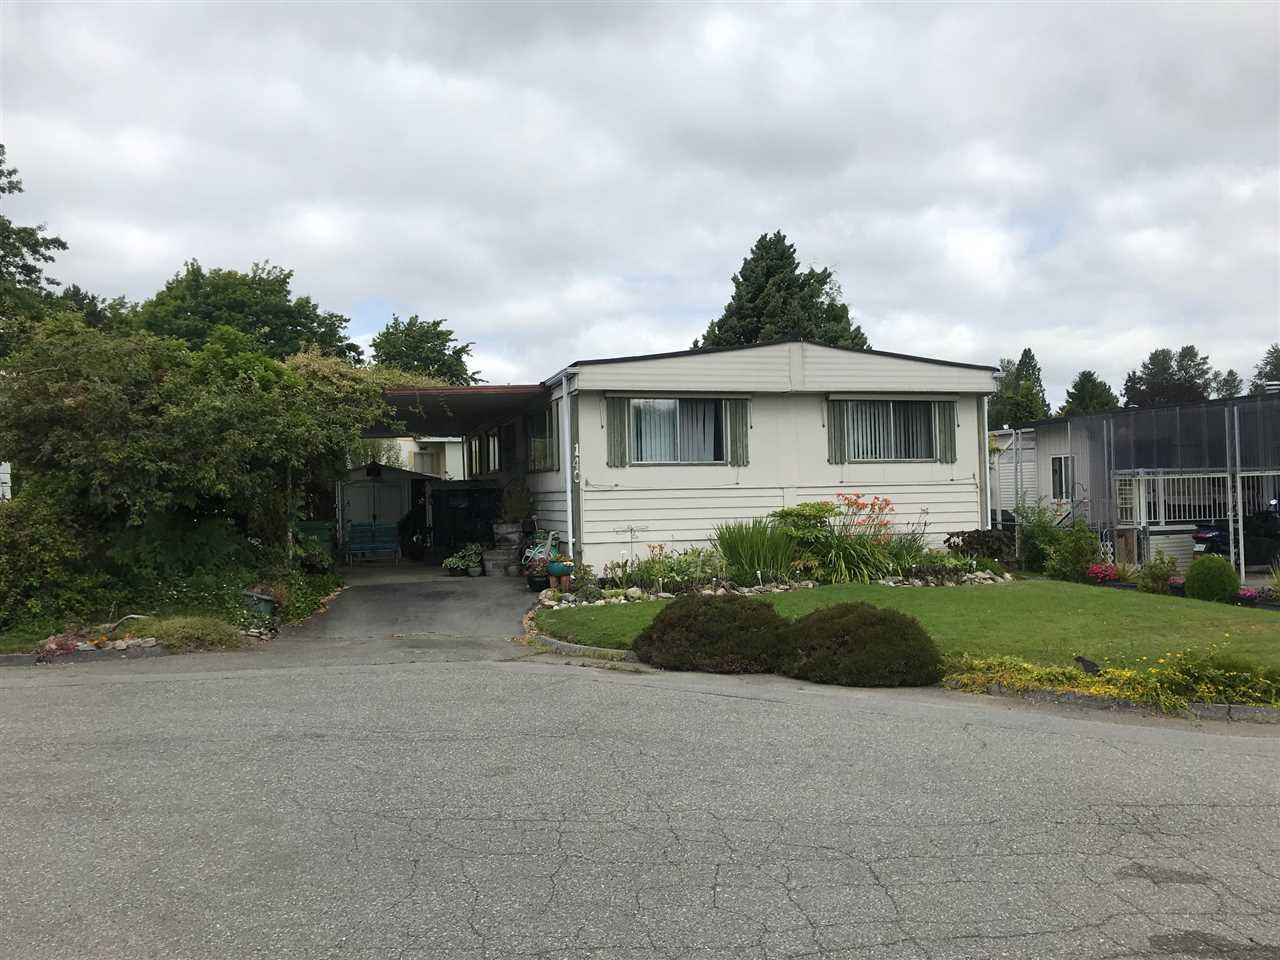 """Main Photo: 140 1840 160 Street in Surrey: King George Corridor Manufactured Home for sale in """"BREAKAWAY BAYS"""" (South Surrey White Rock)  : MLS®# R2382456"""